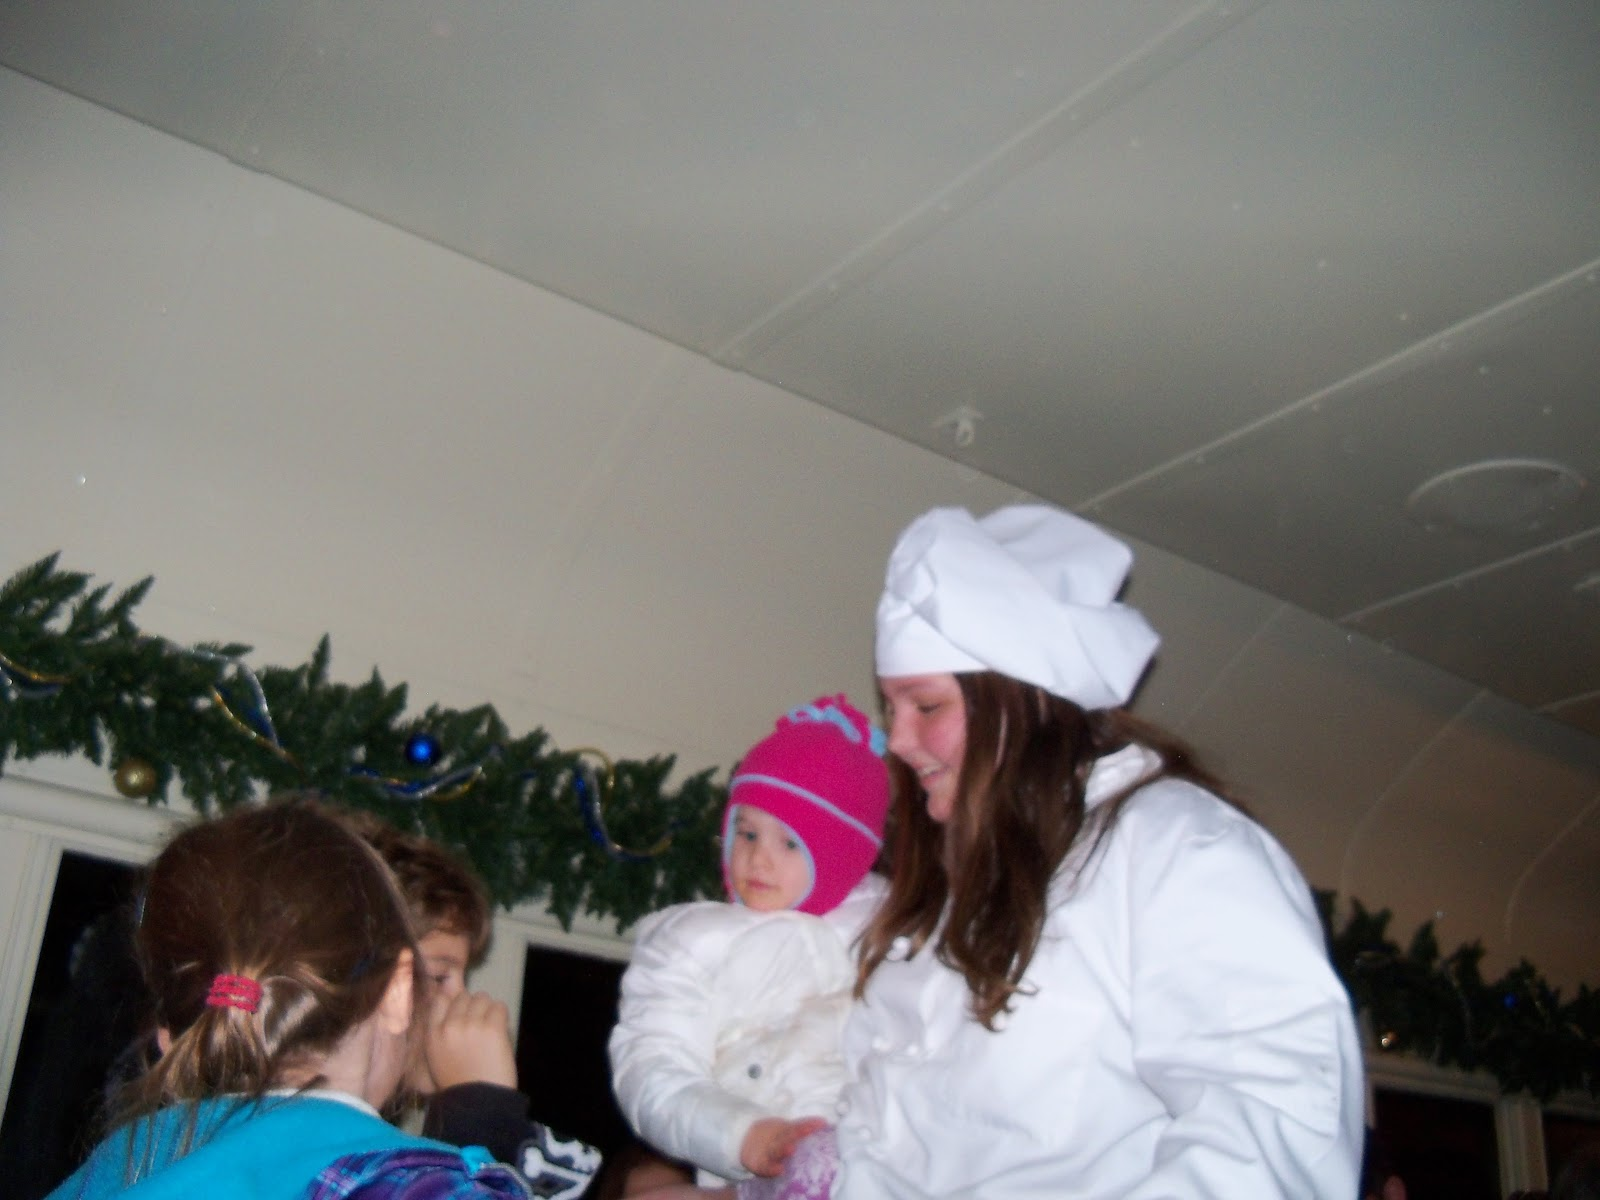 Polar Express Christmas Train 2011 - 115_0985.JPG